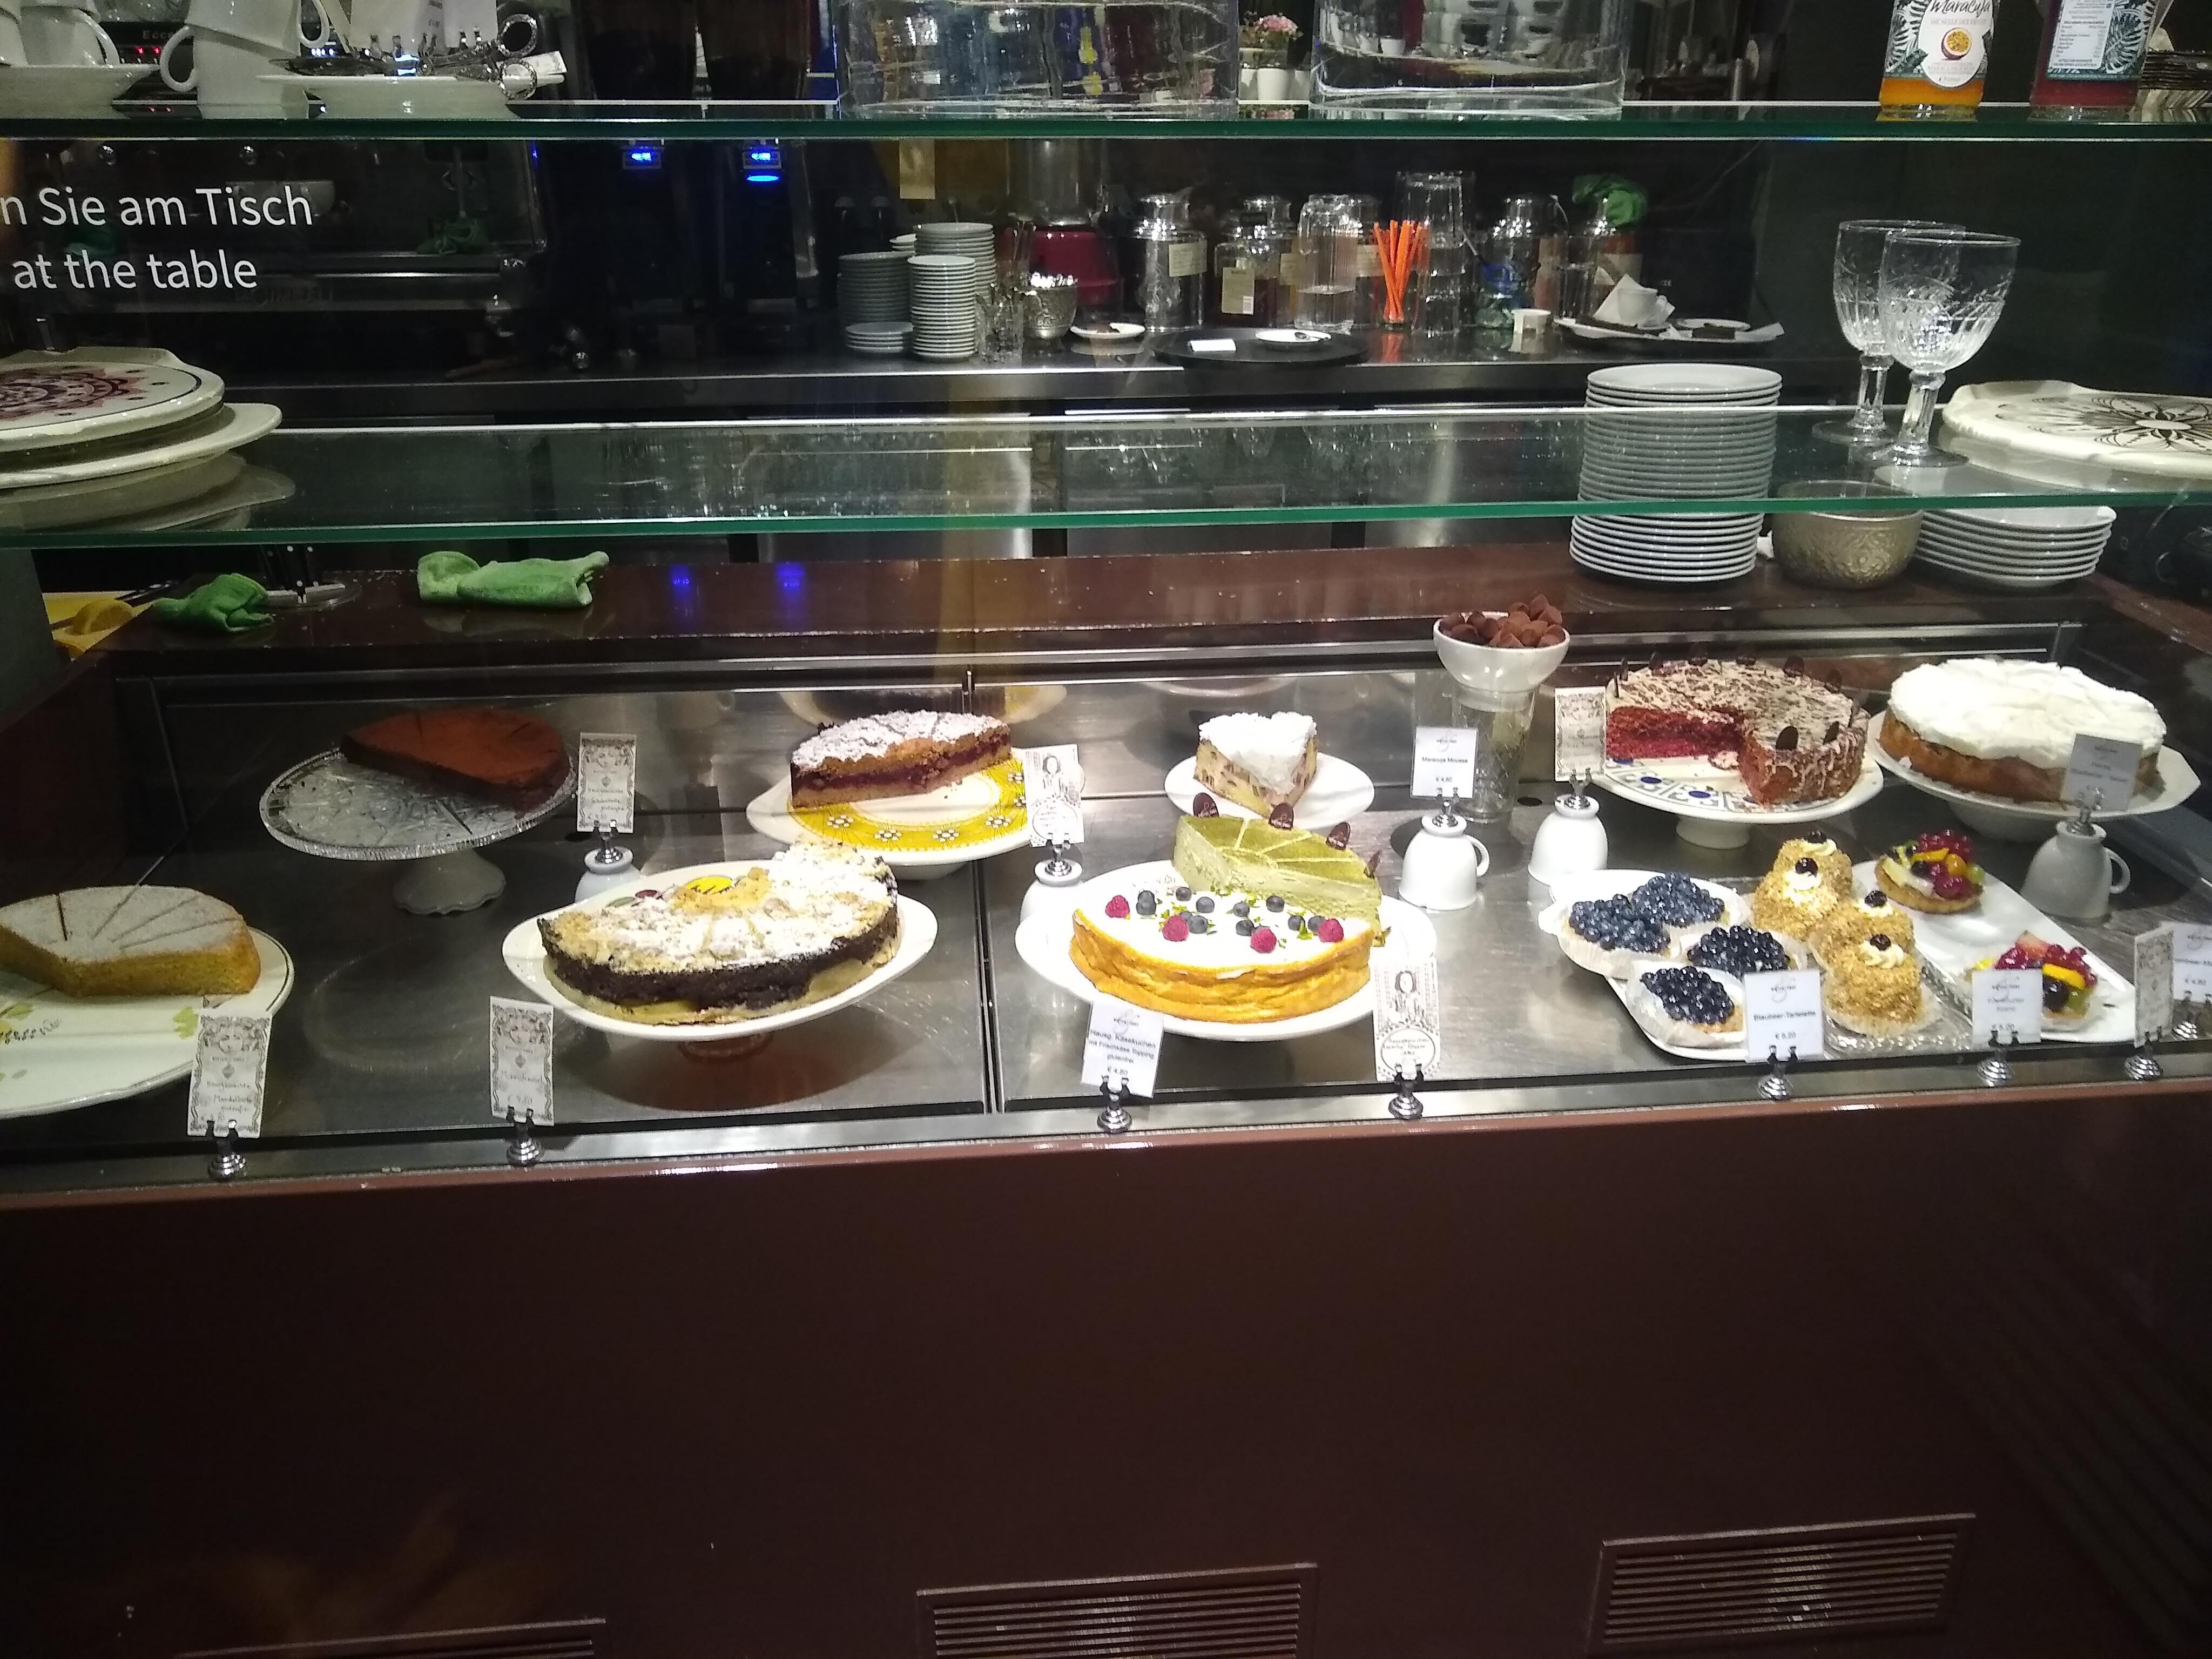 A counter filled with many different types of cakes.